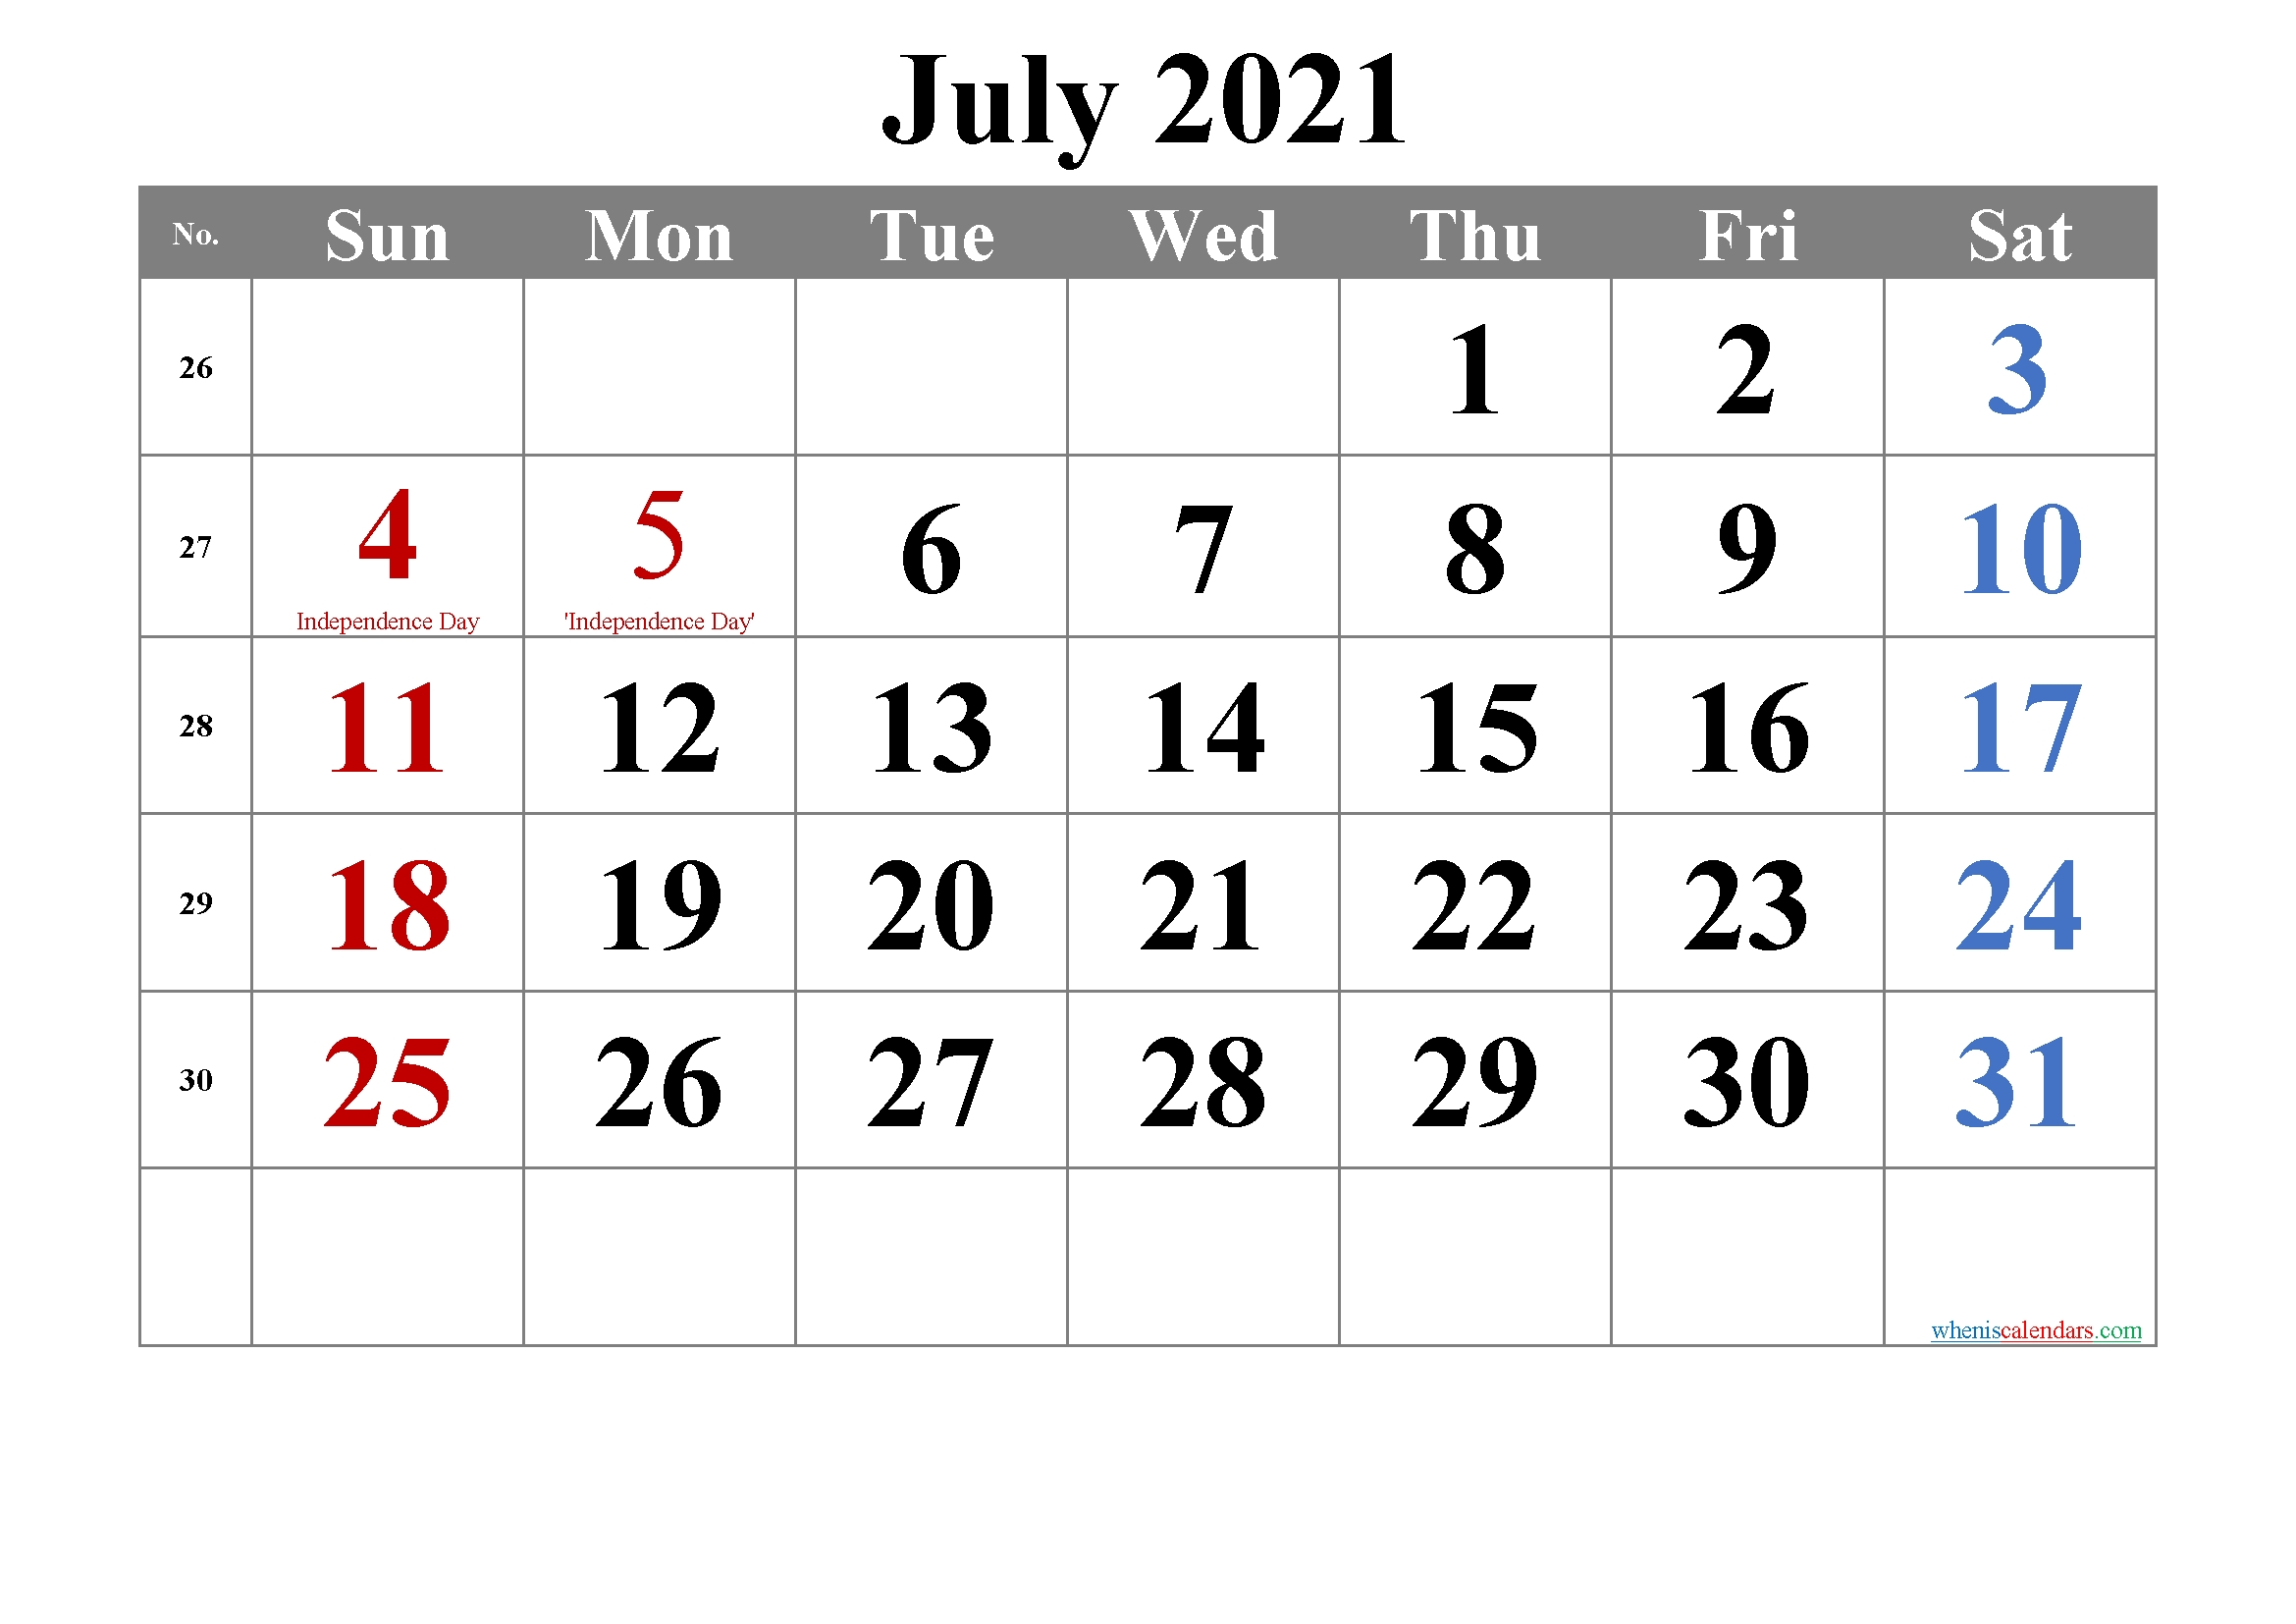 July 2021 Calendar With Holidays Printable Template No